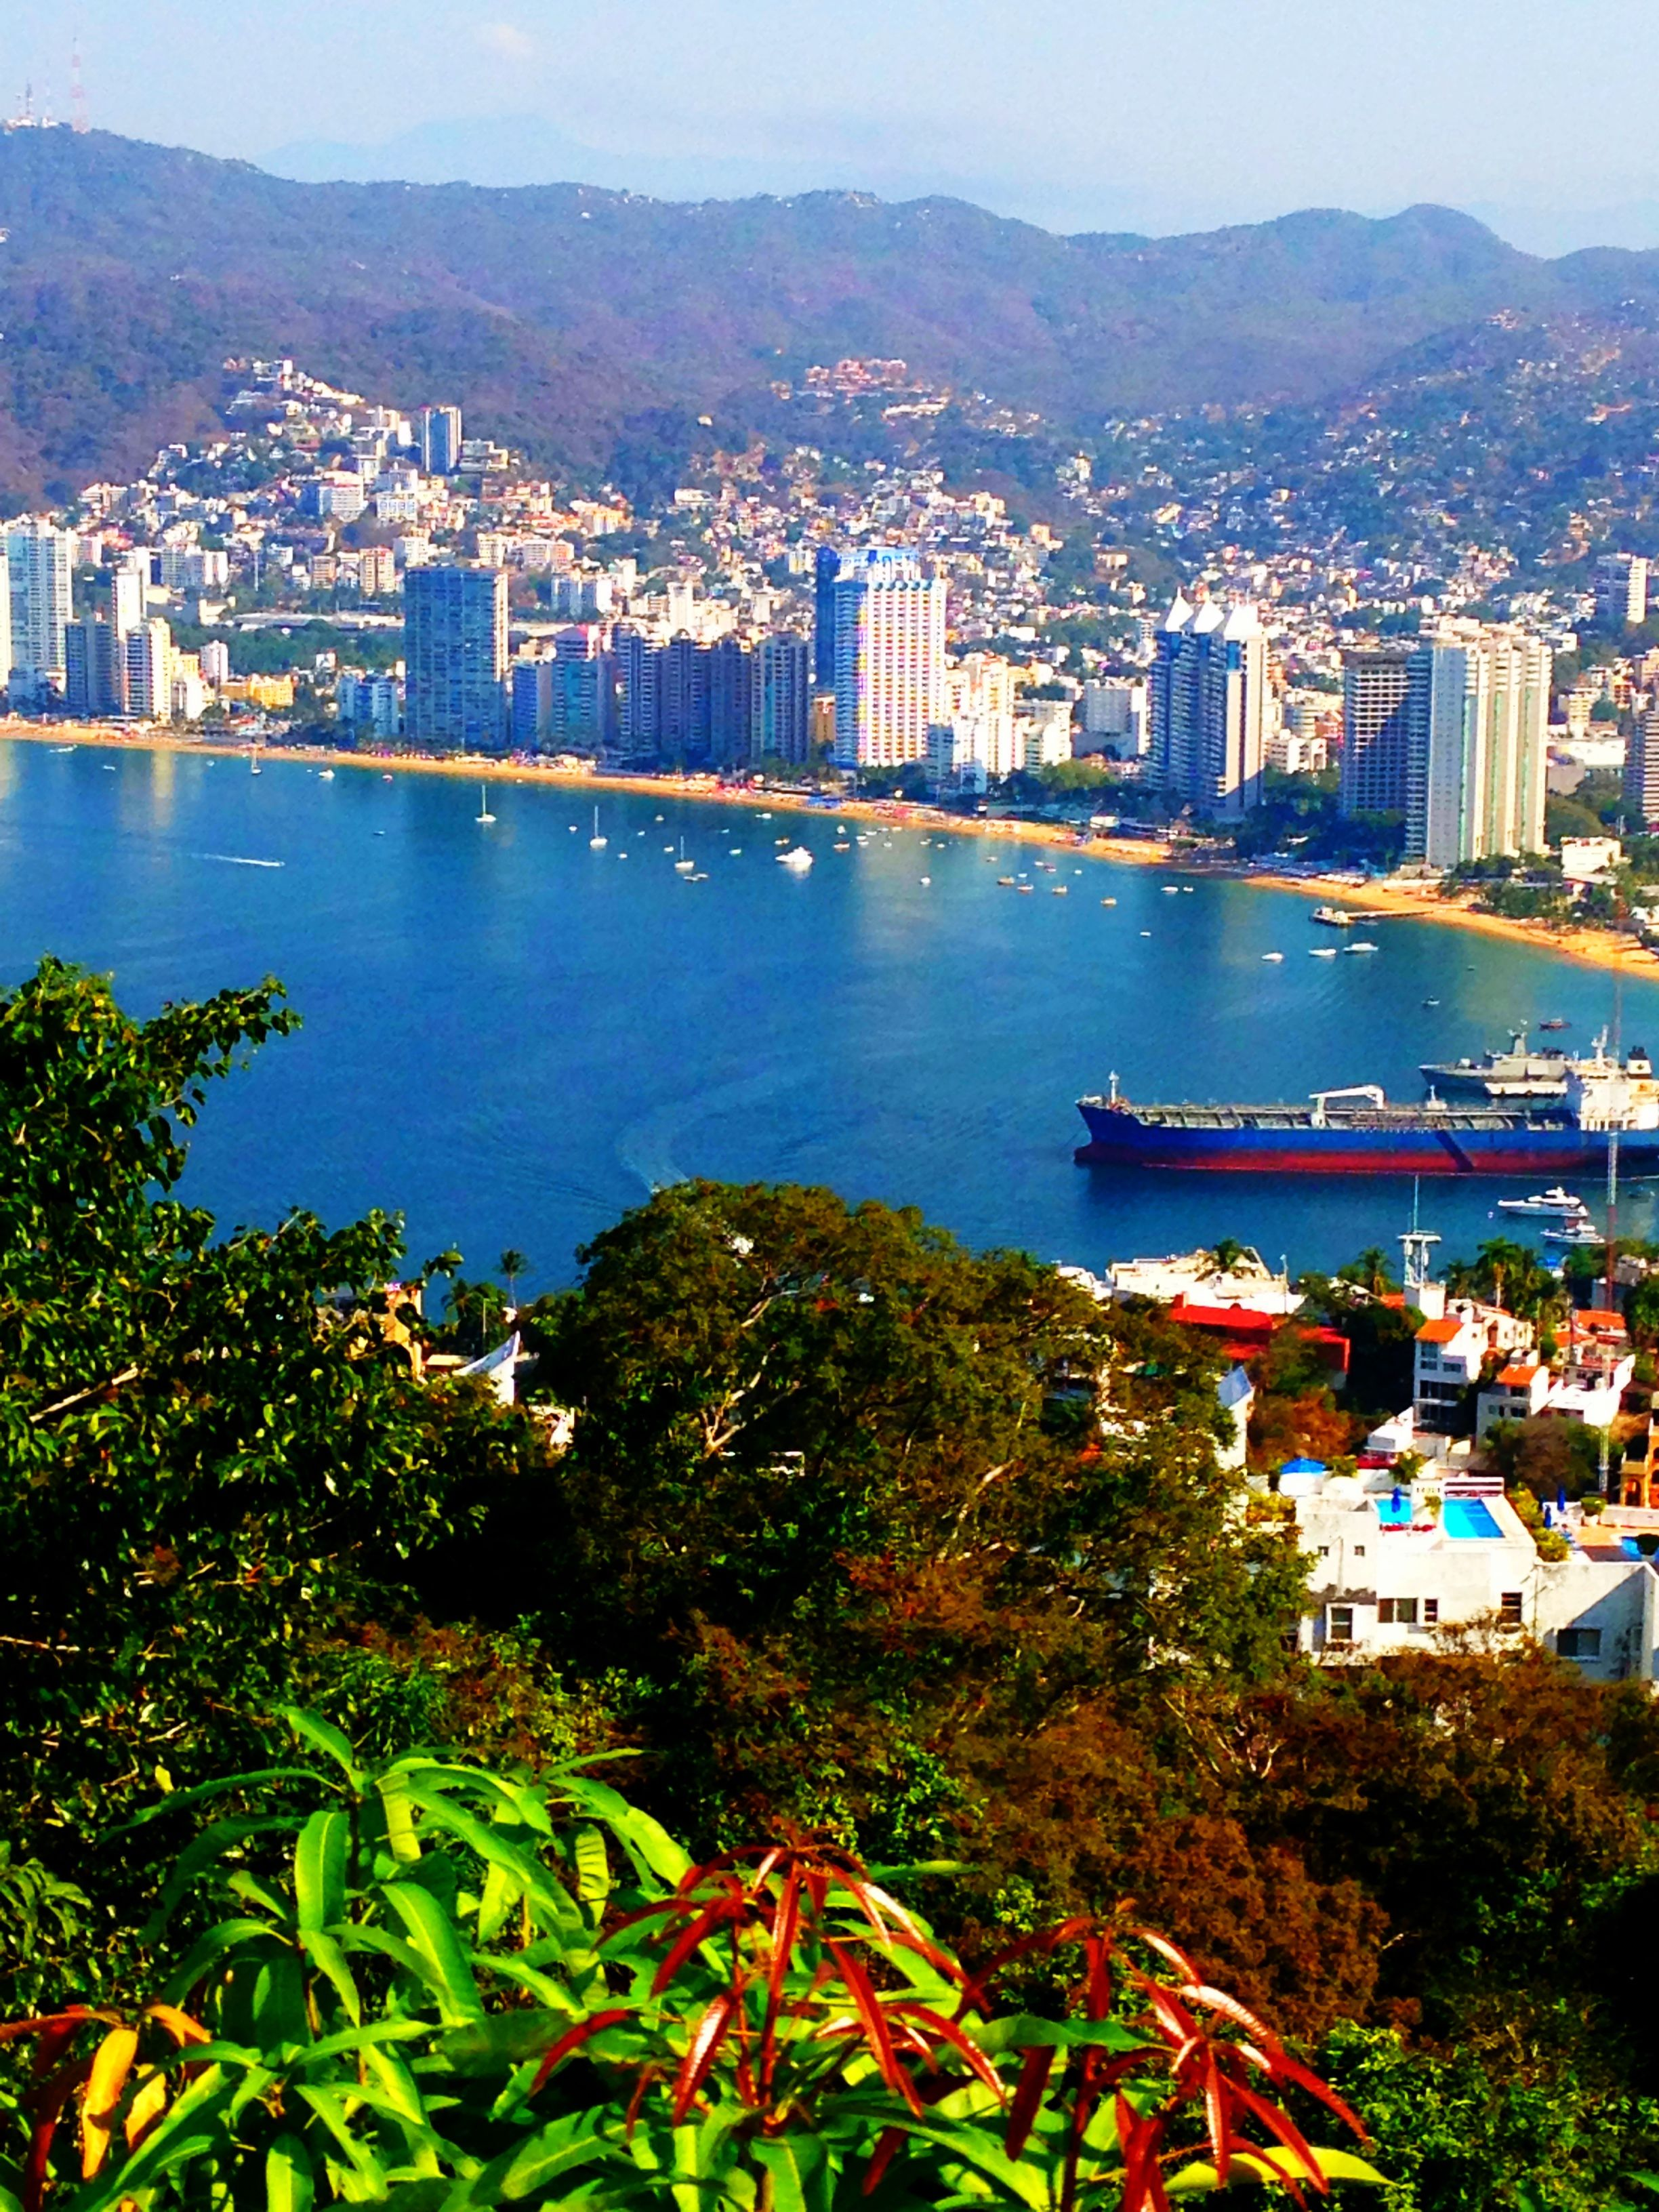 View of Acapulco city and bay from